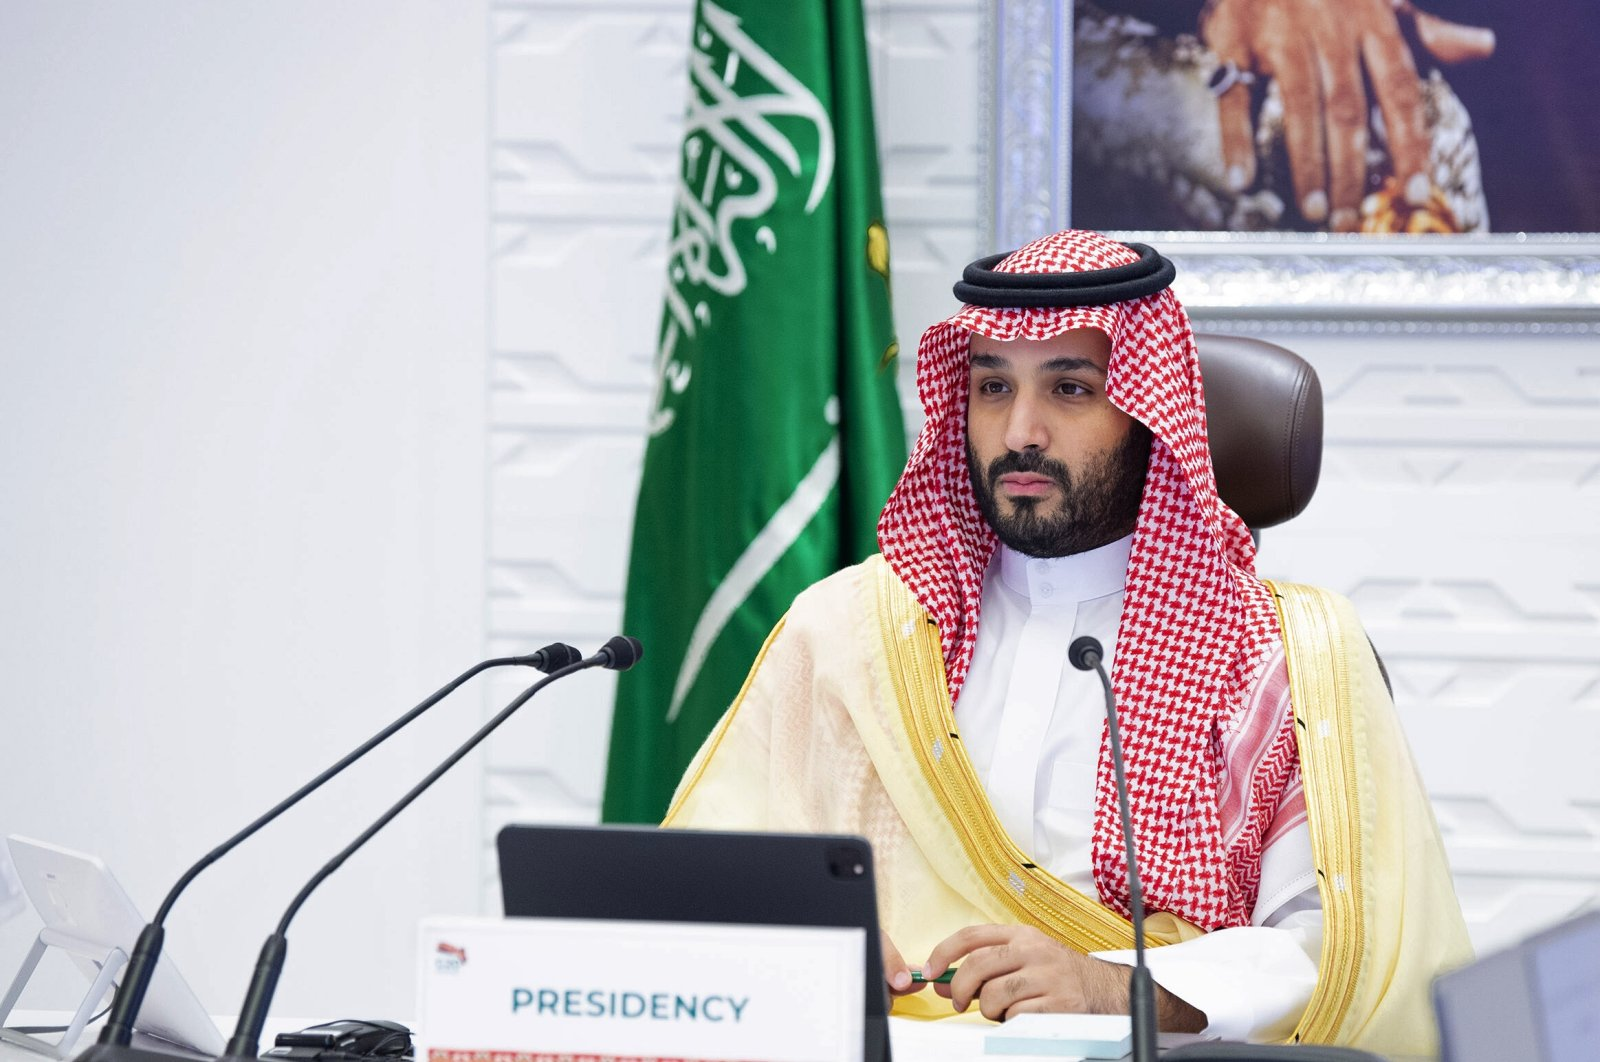 Saudi Arabia's Crown Prince Mohammed bin Salman (MBS) attends a virtual G-20 summit, in Riyadh, Saudi Arabia, Nov. 22, 2020. (AP Photo)